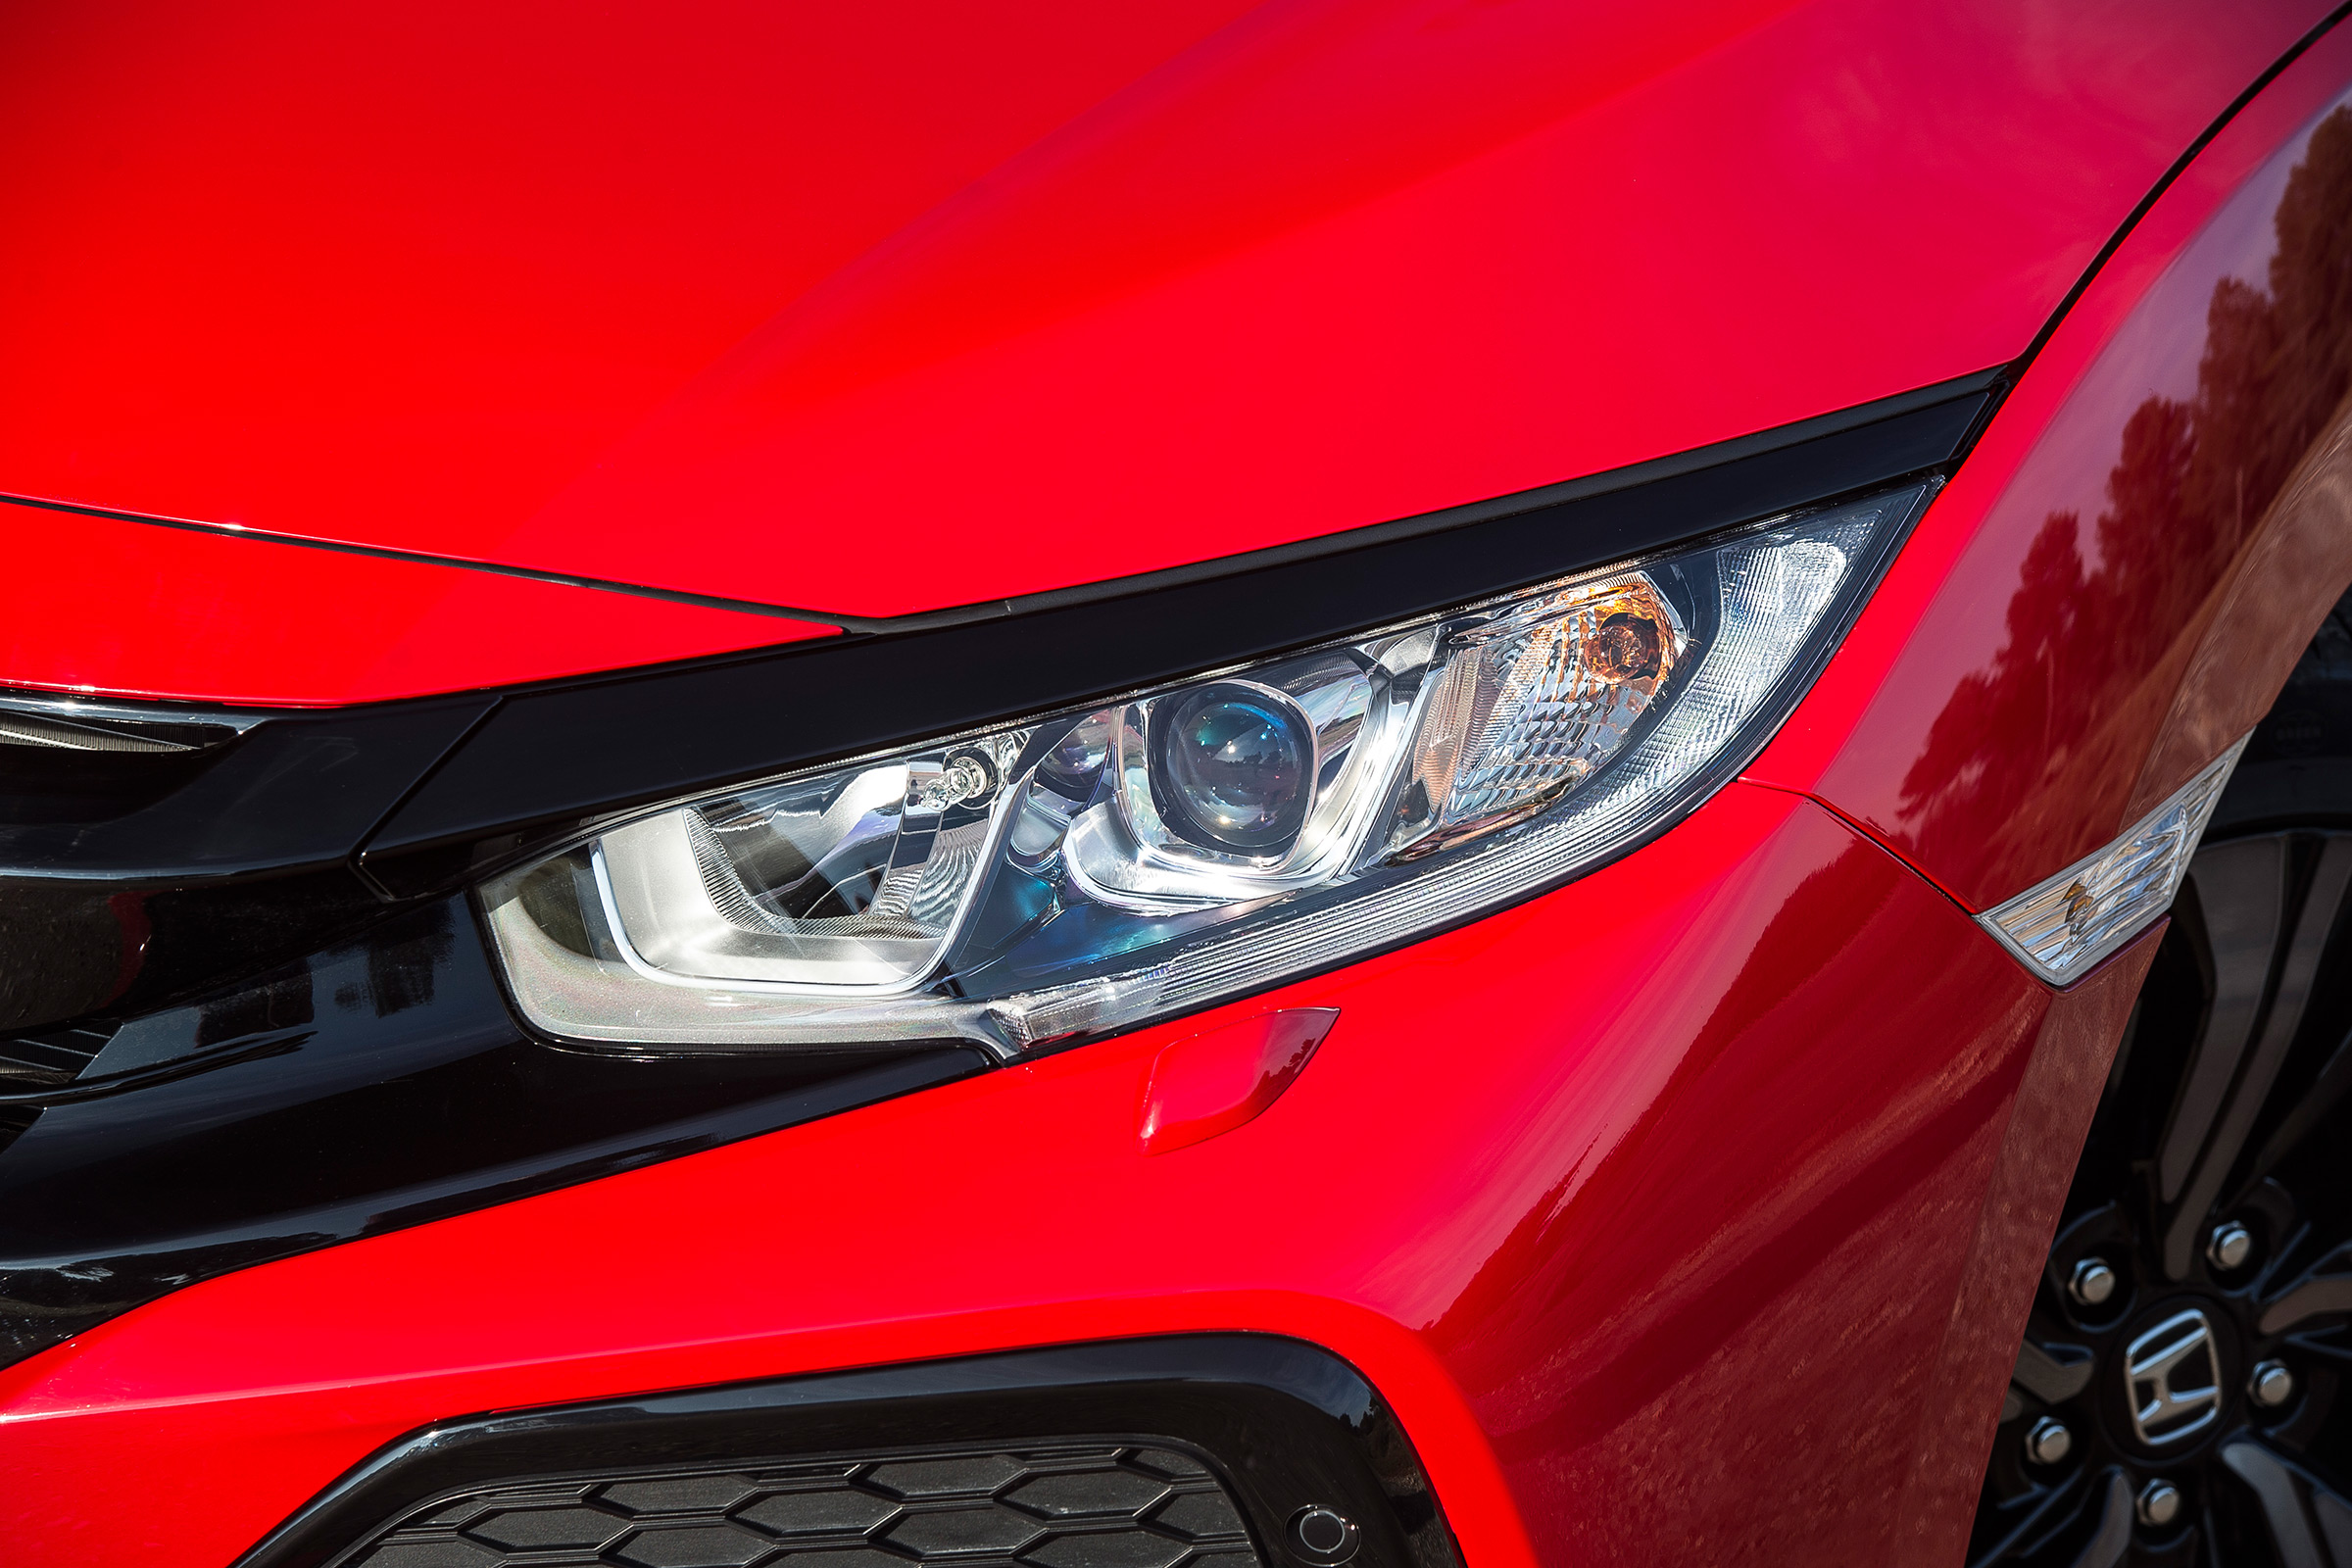 2017 Honda Civic Hatchback Red Exterior View Headlight (Photo 27 of 34)